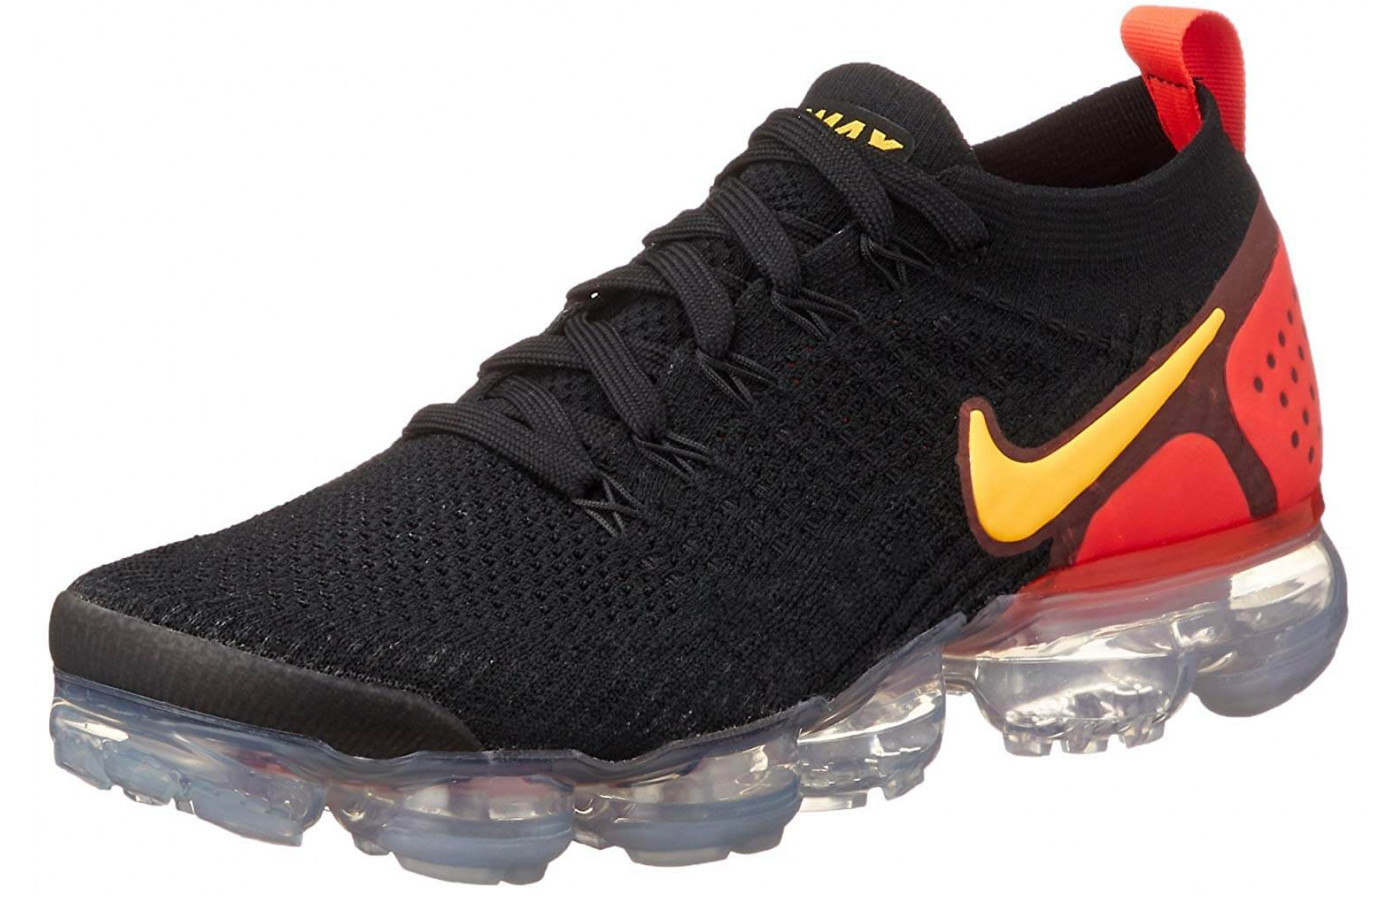 Nike Air VaporMax Flyknit 2 - To Buy or Not in Apr 2019  4997e773a